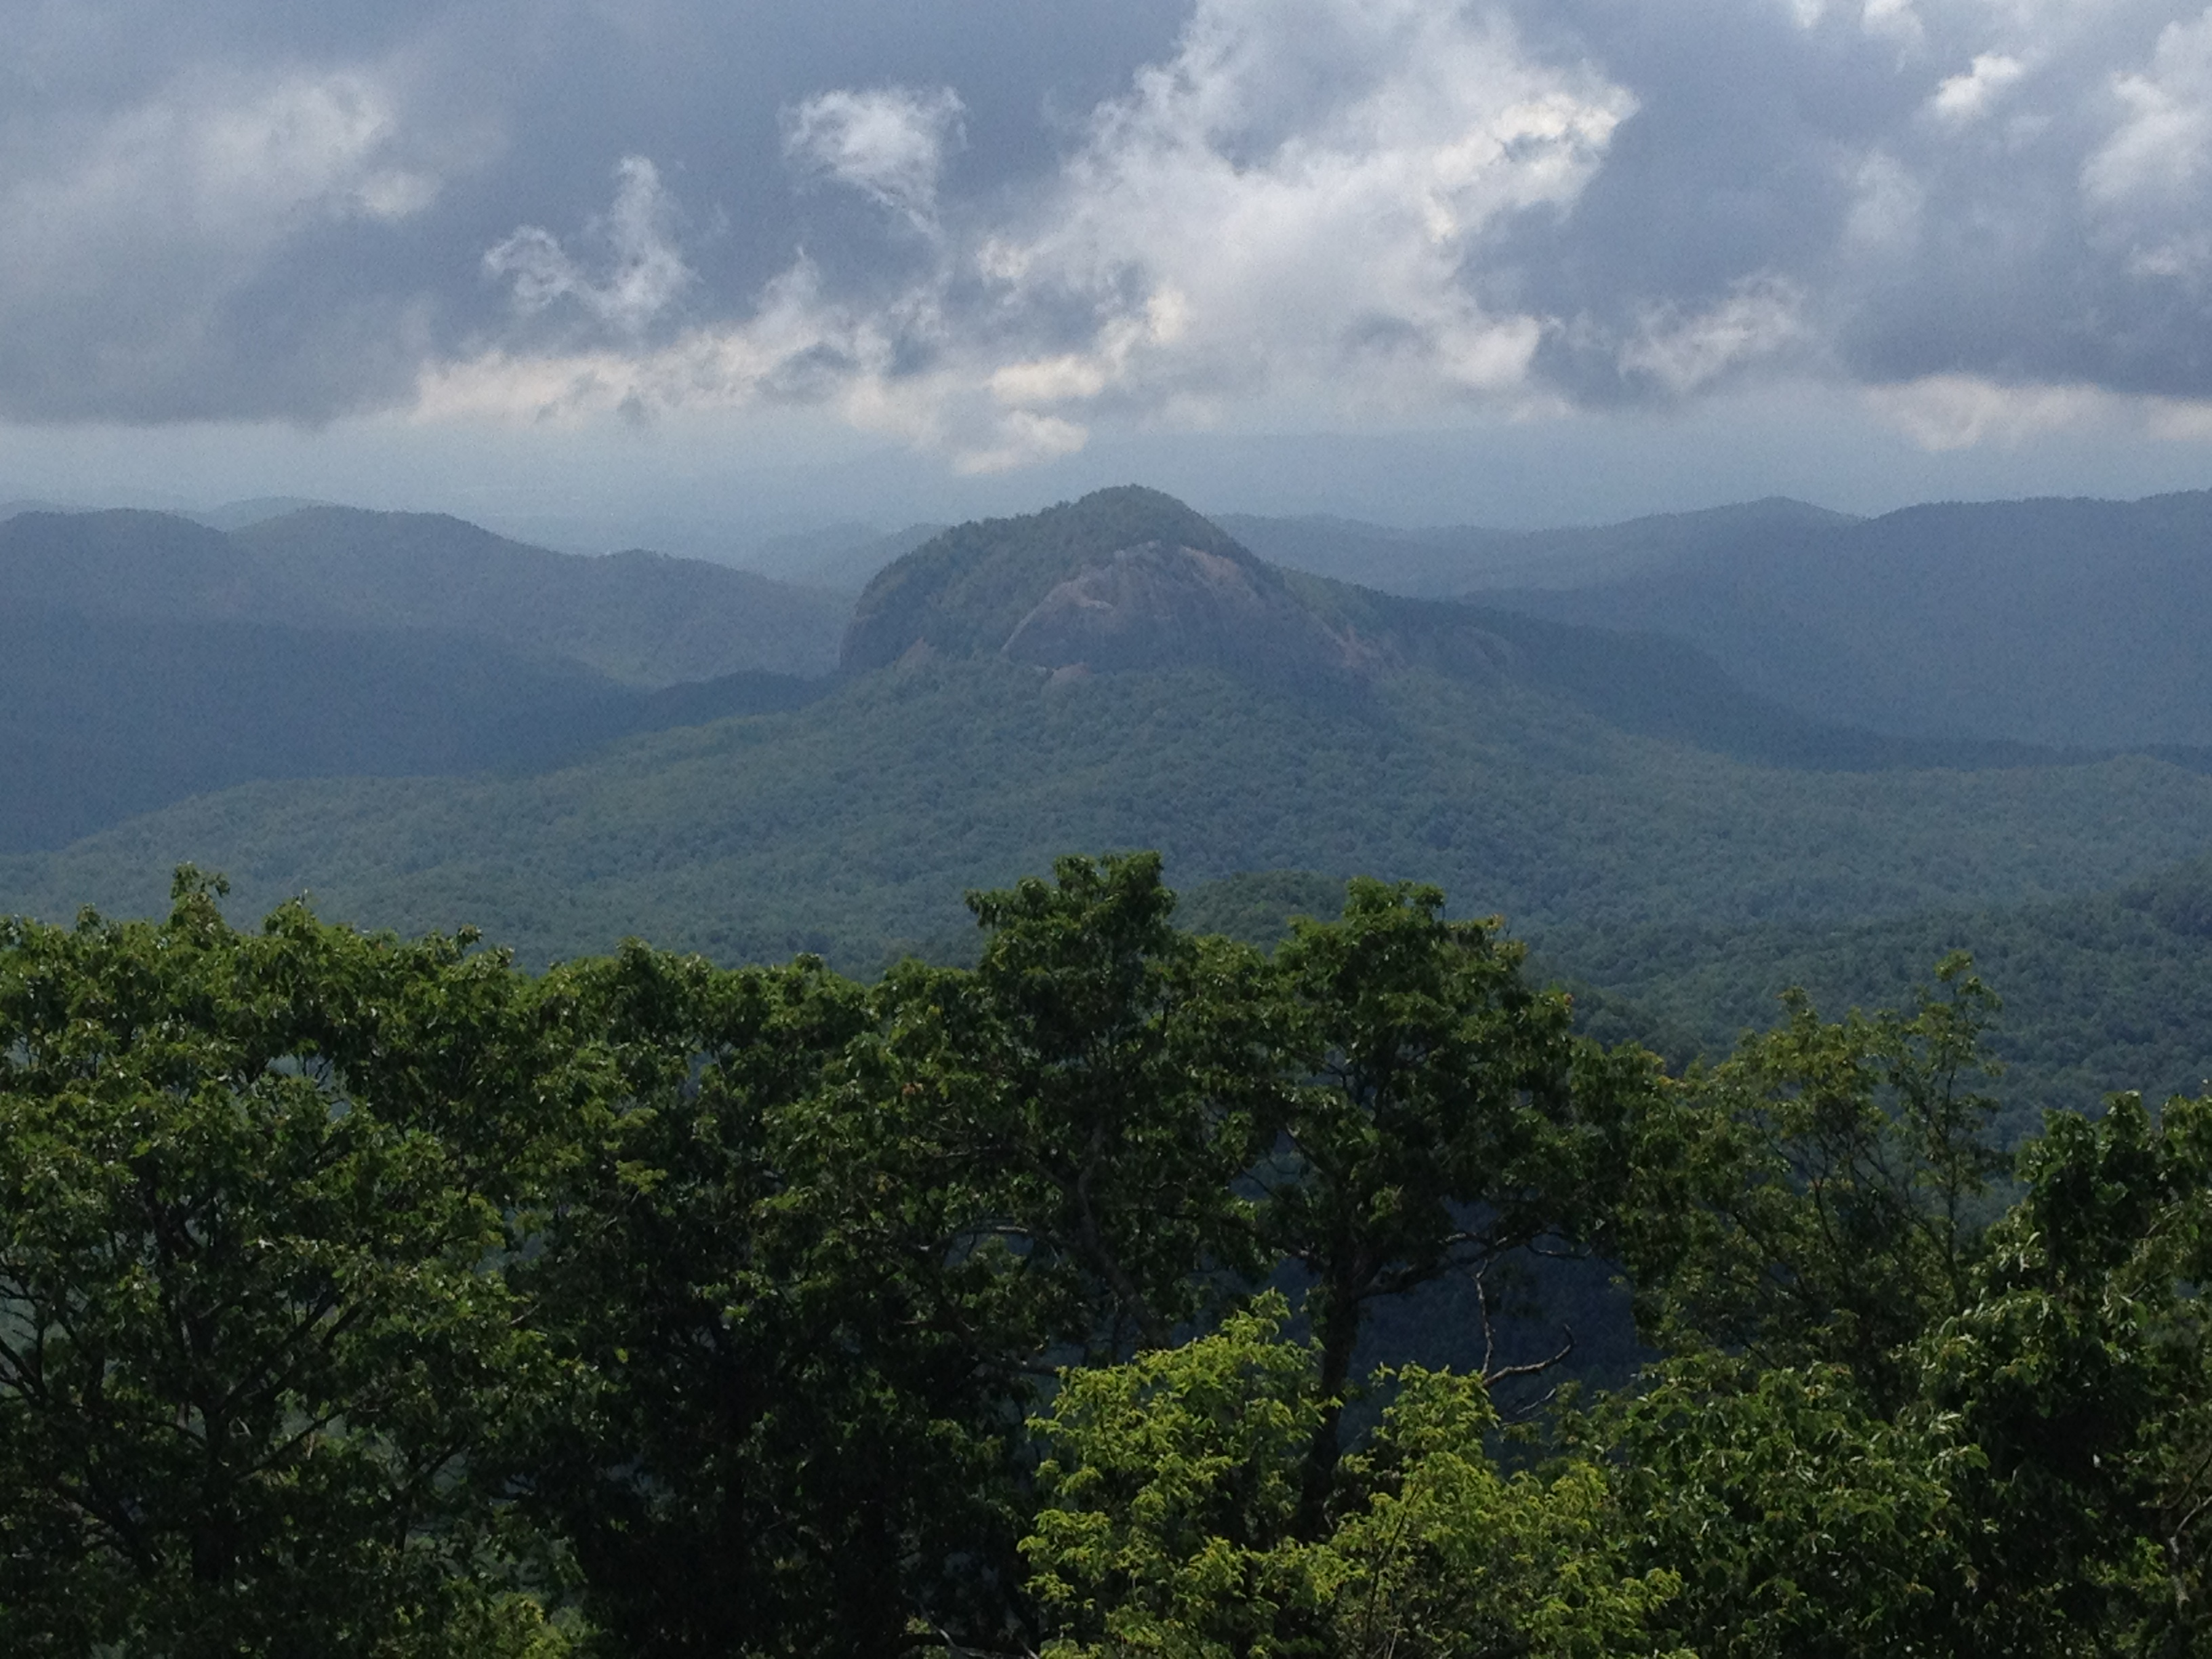 Looking Glass Rock along Blue Ridge Parkway